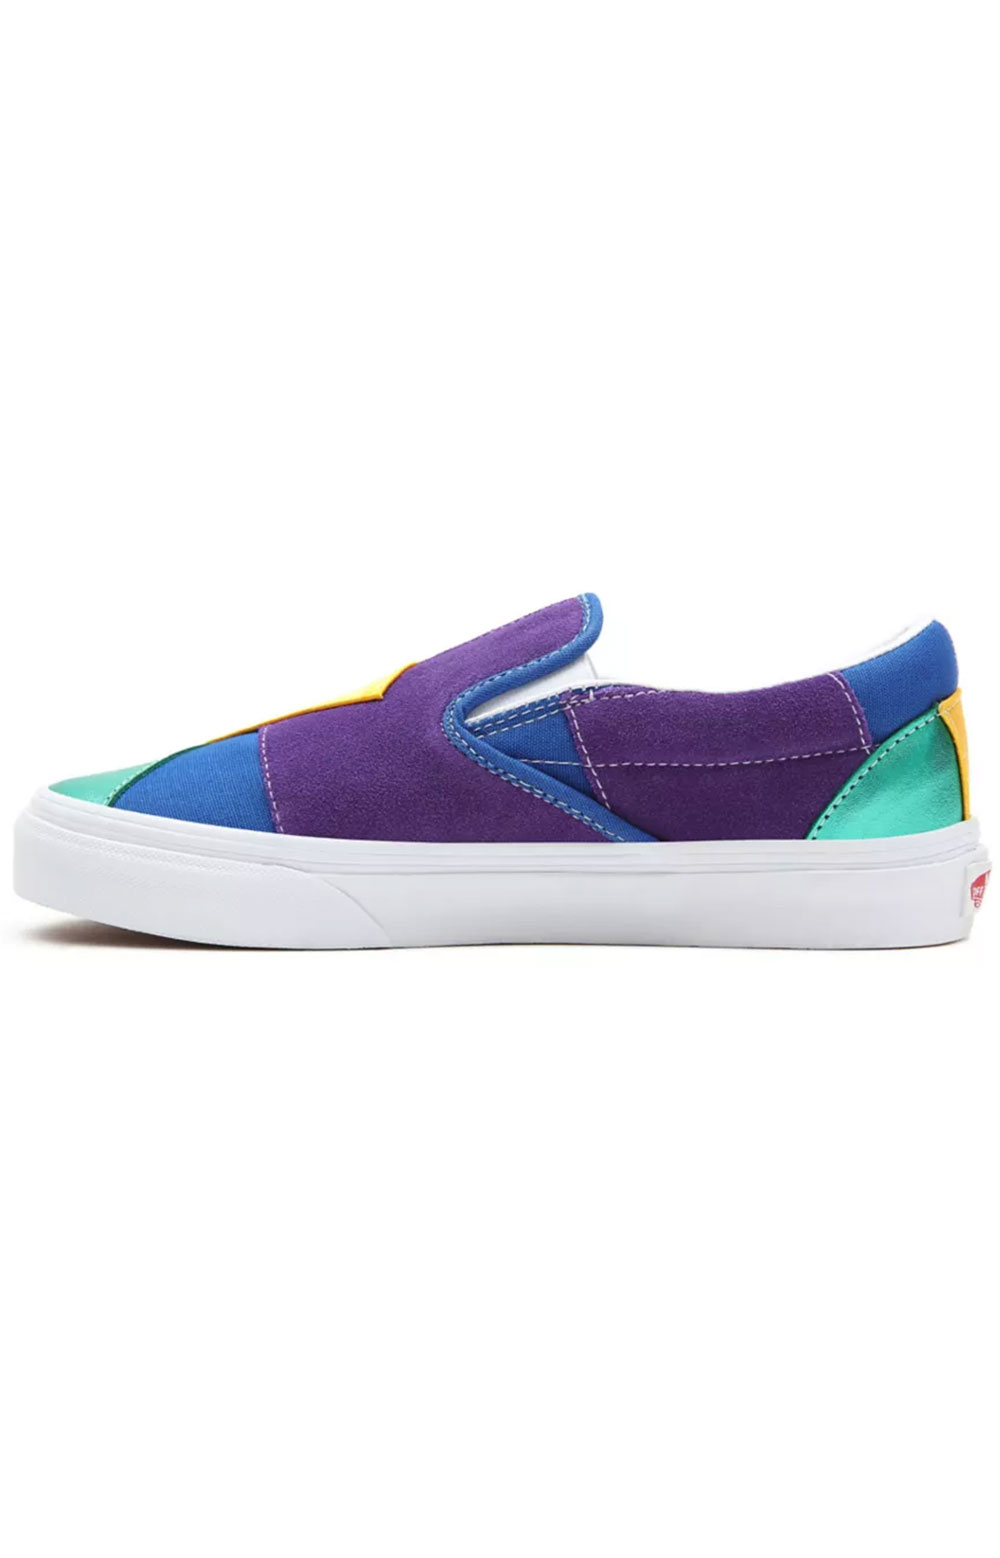 (3TB44B) Pride Classic Slip-On Shoes - Patchwork  3